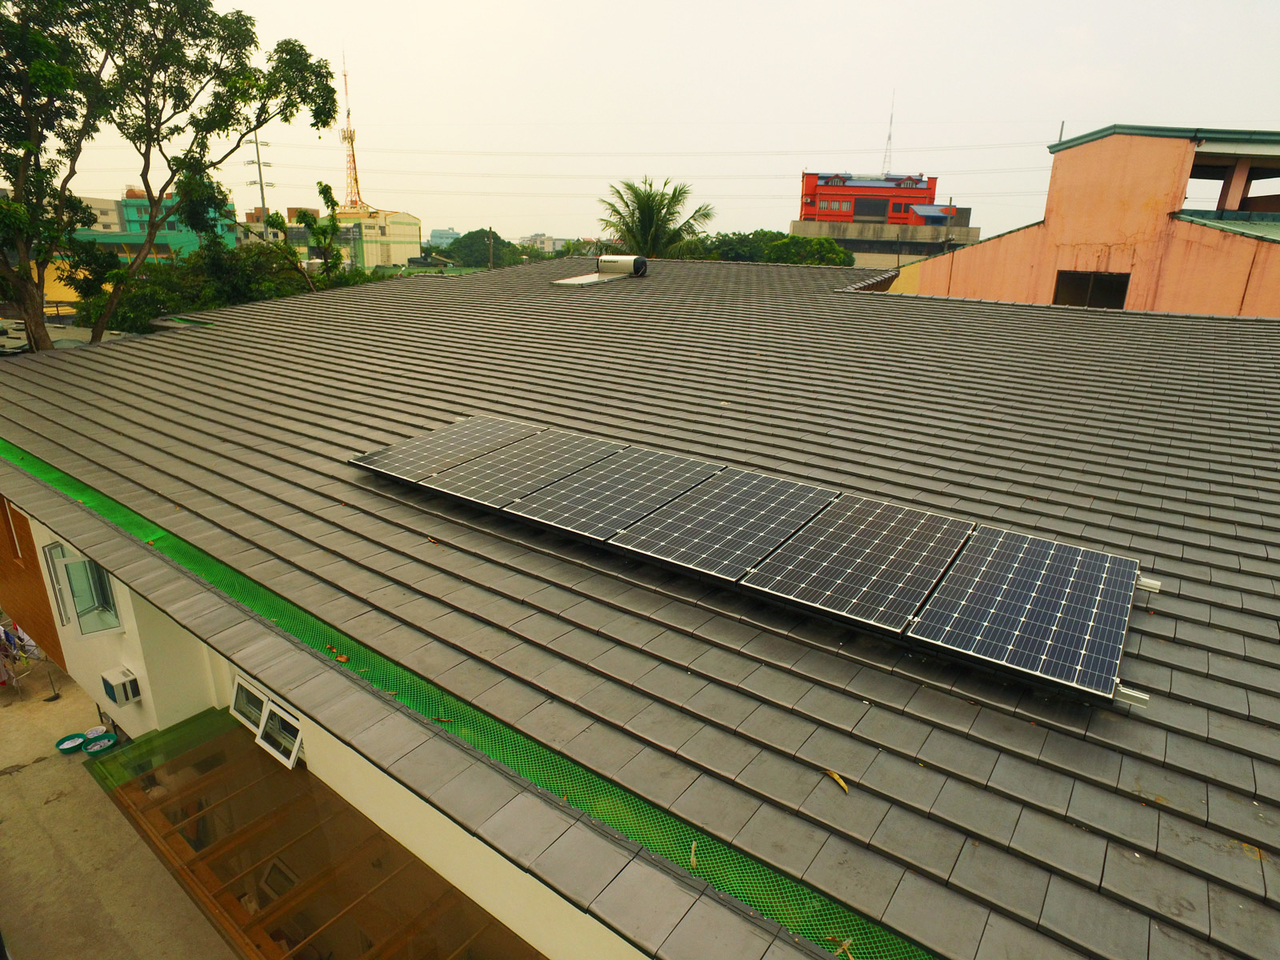 Shot of a home's roof with solar panels